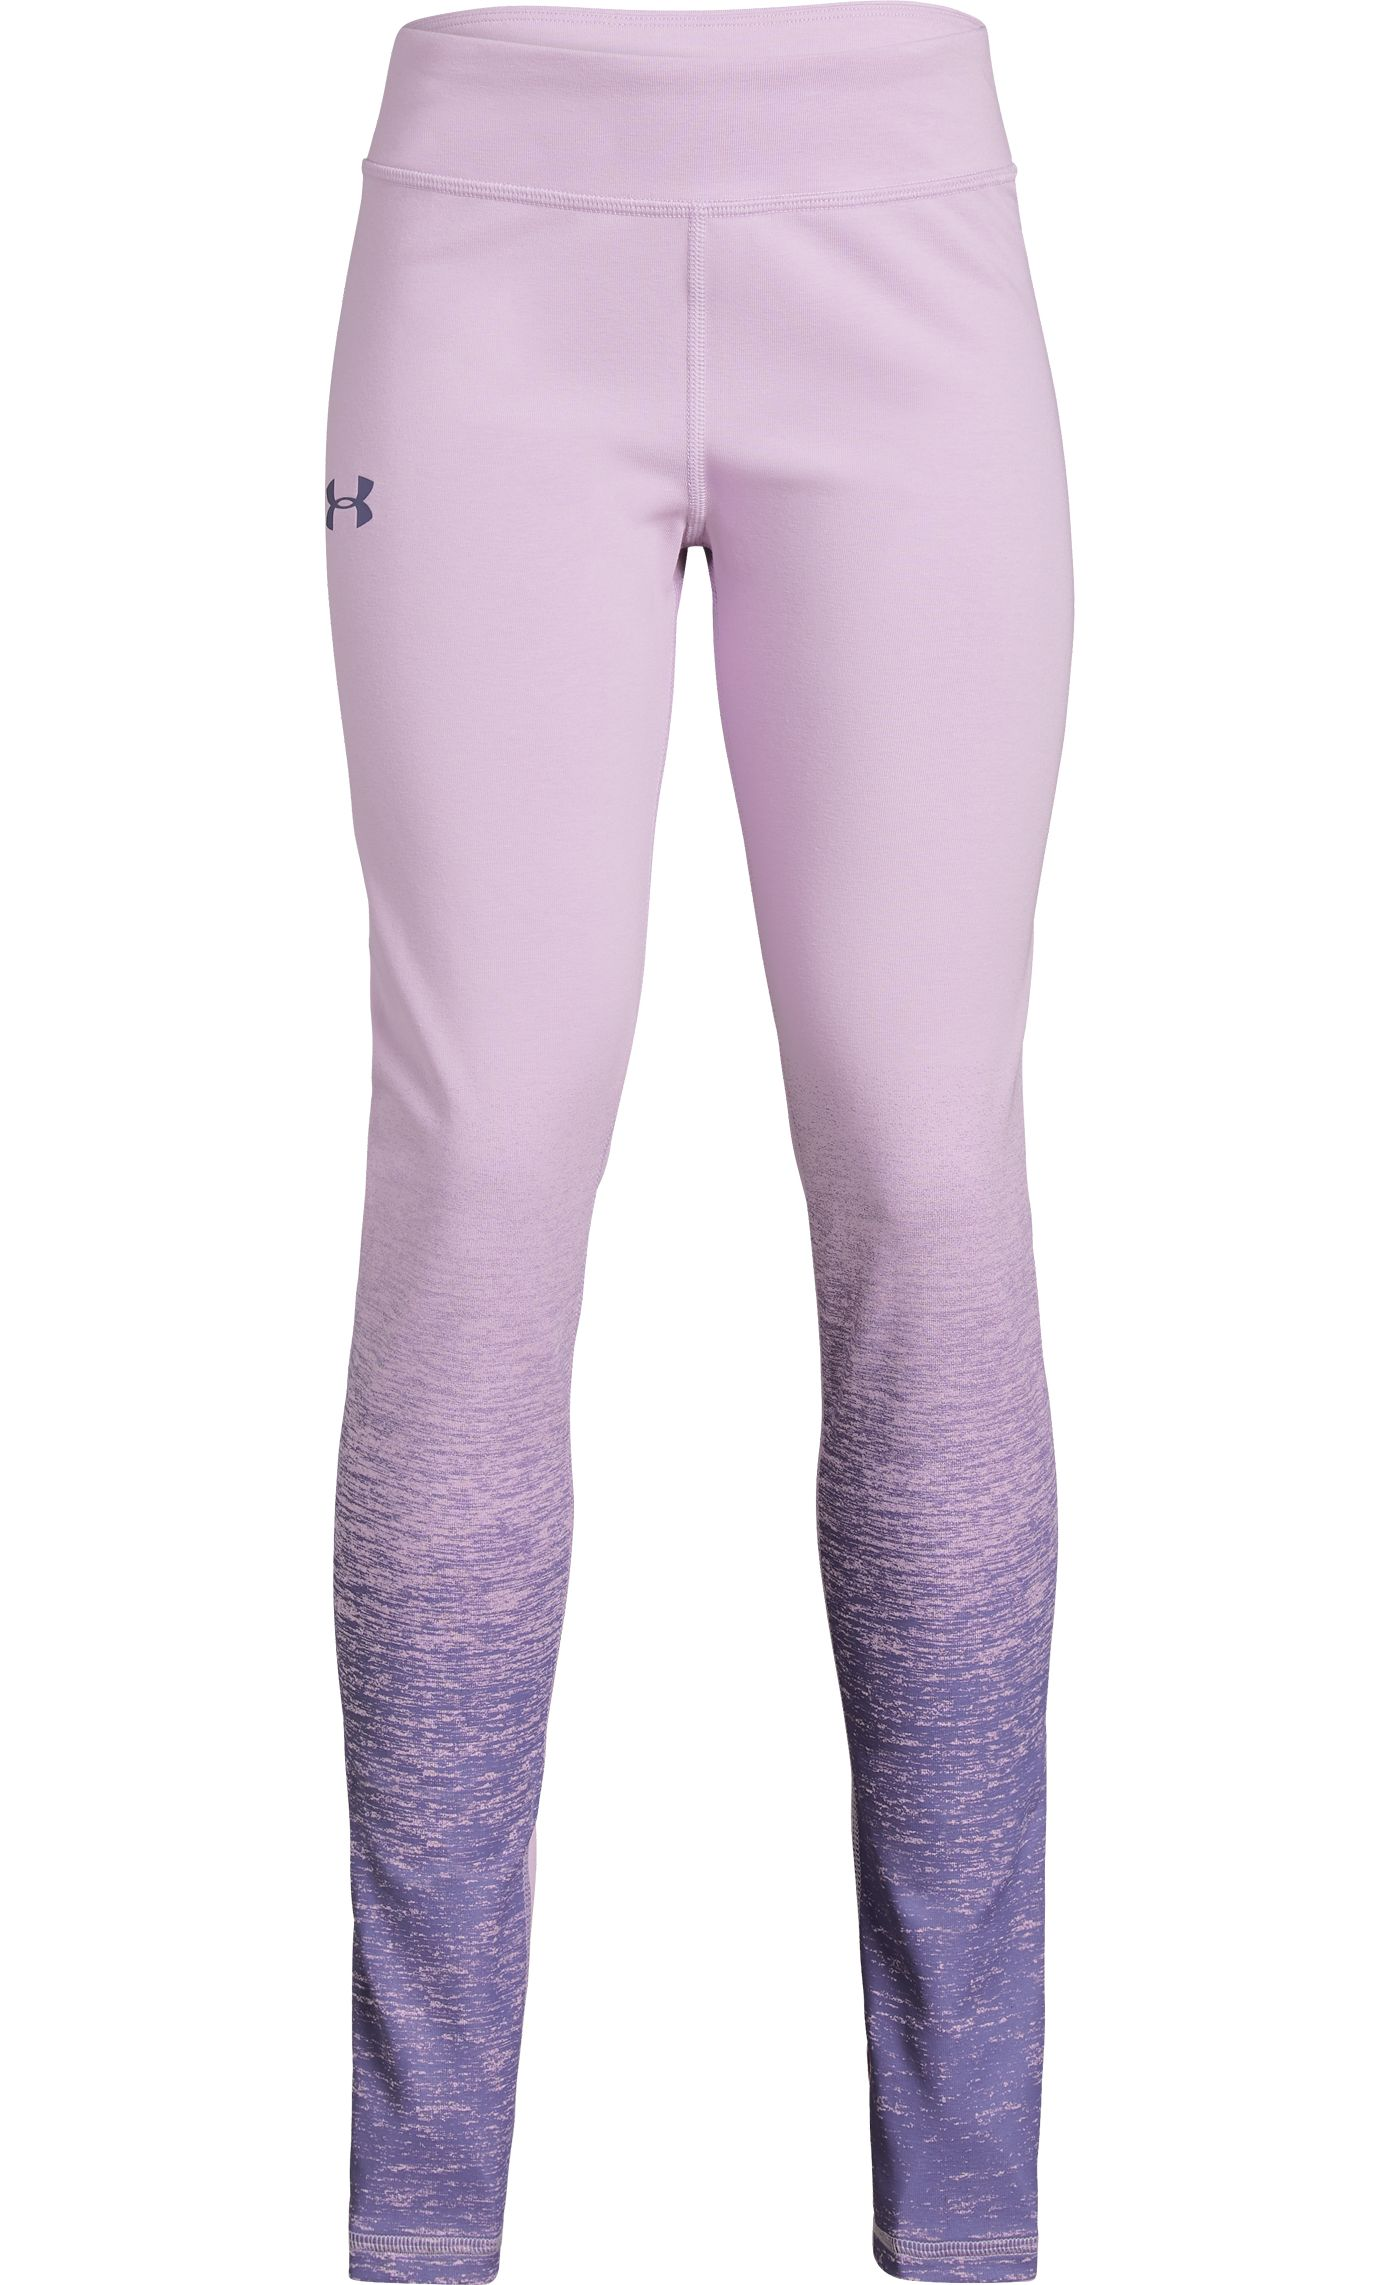 Under Armour Girls' Finale Gradient Leggings